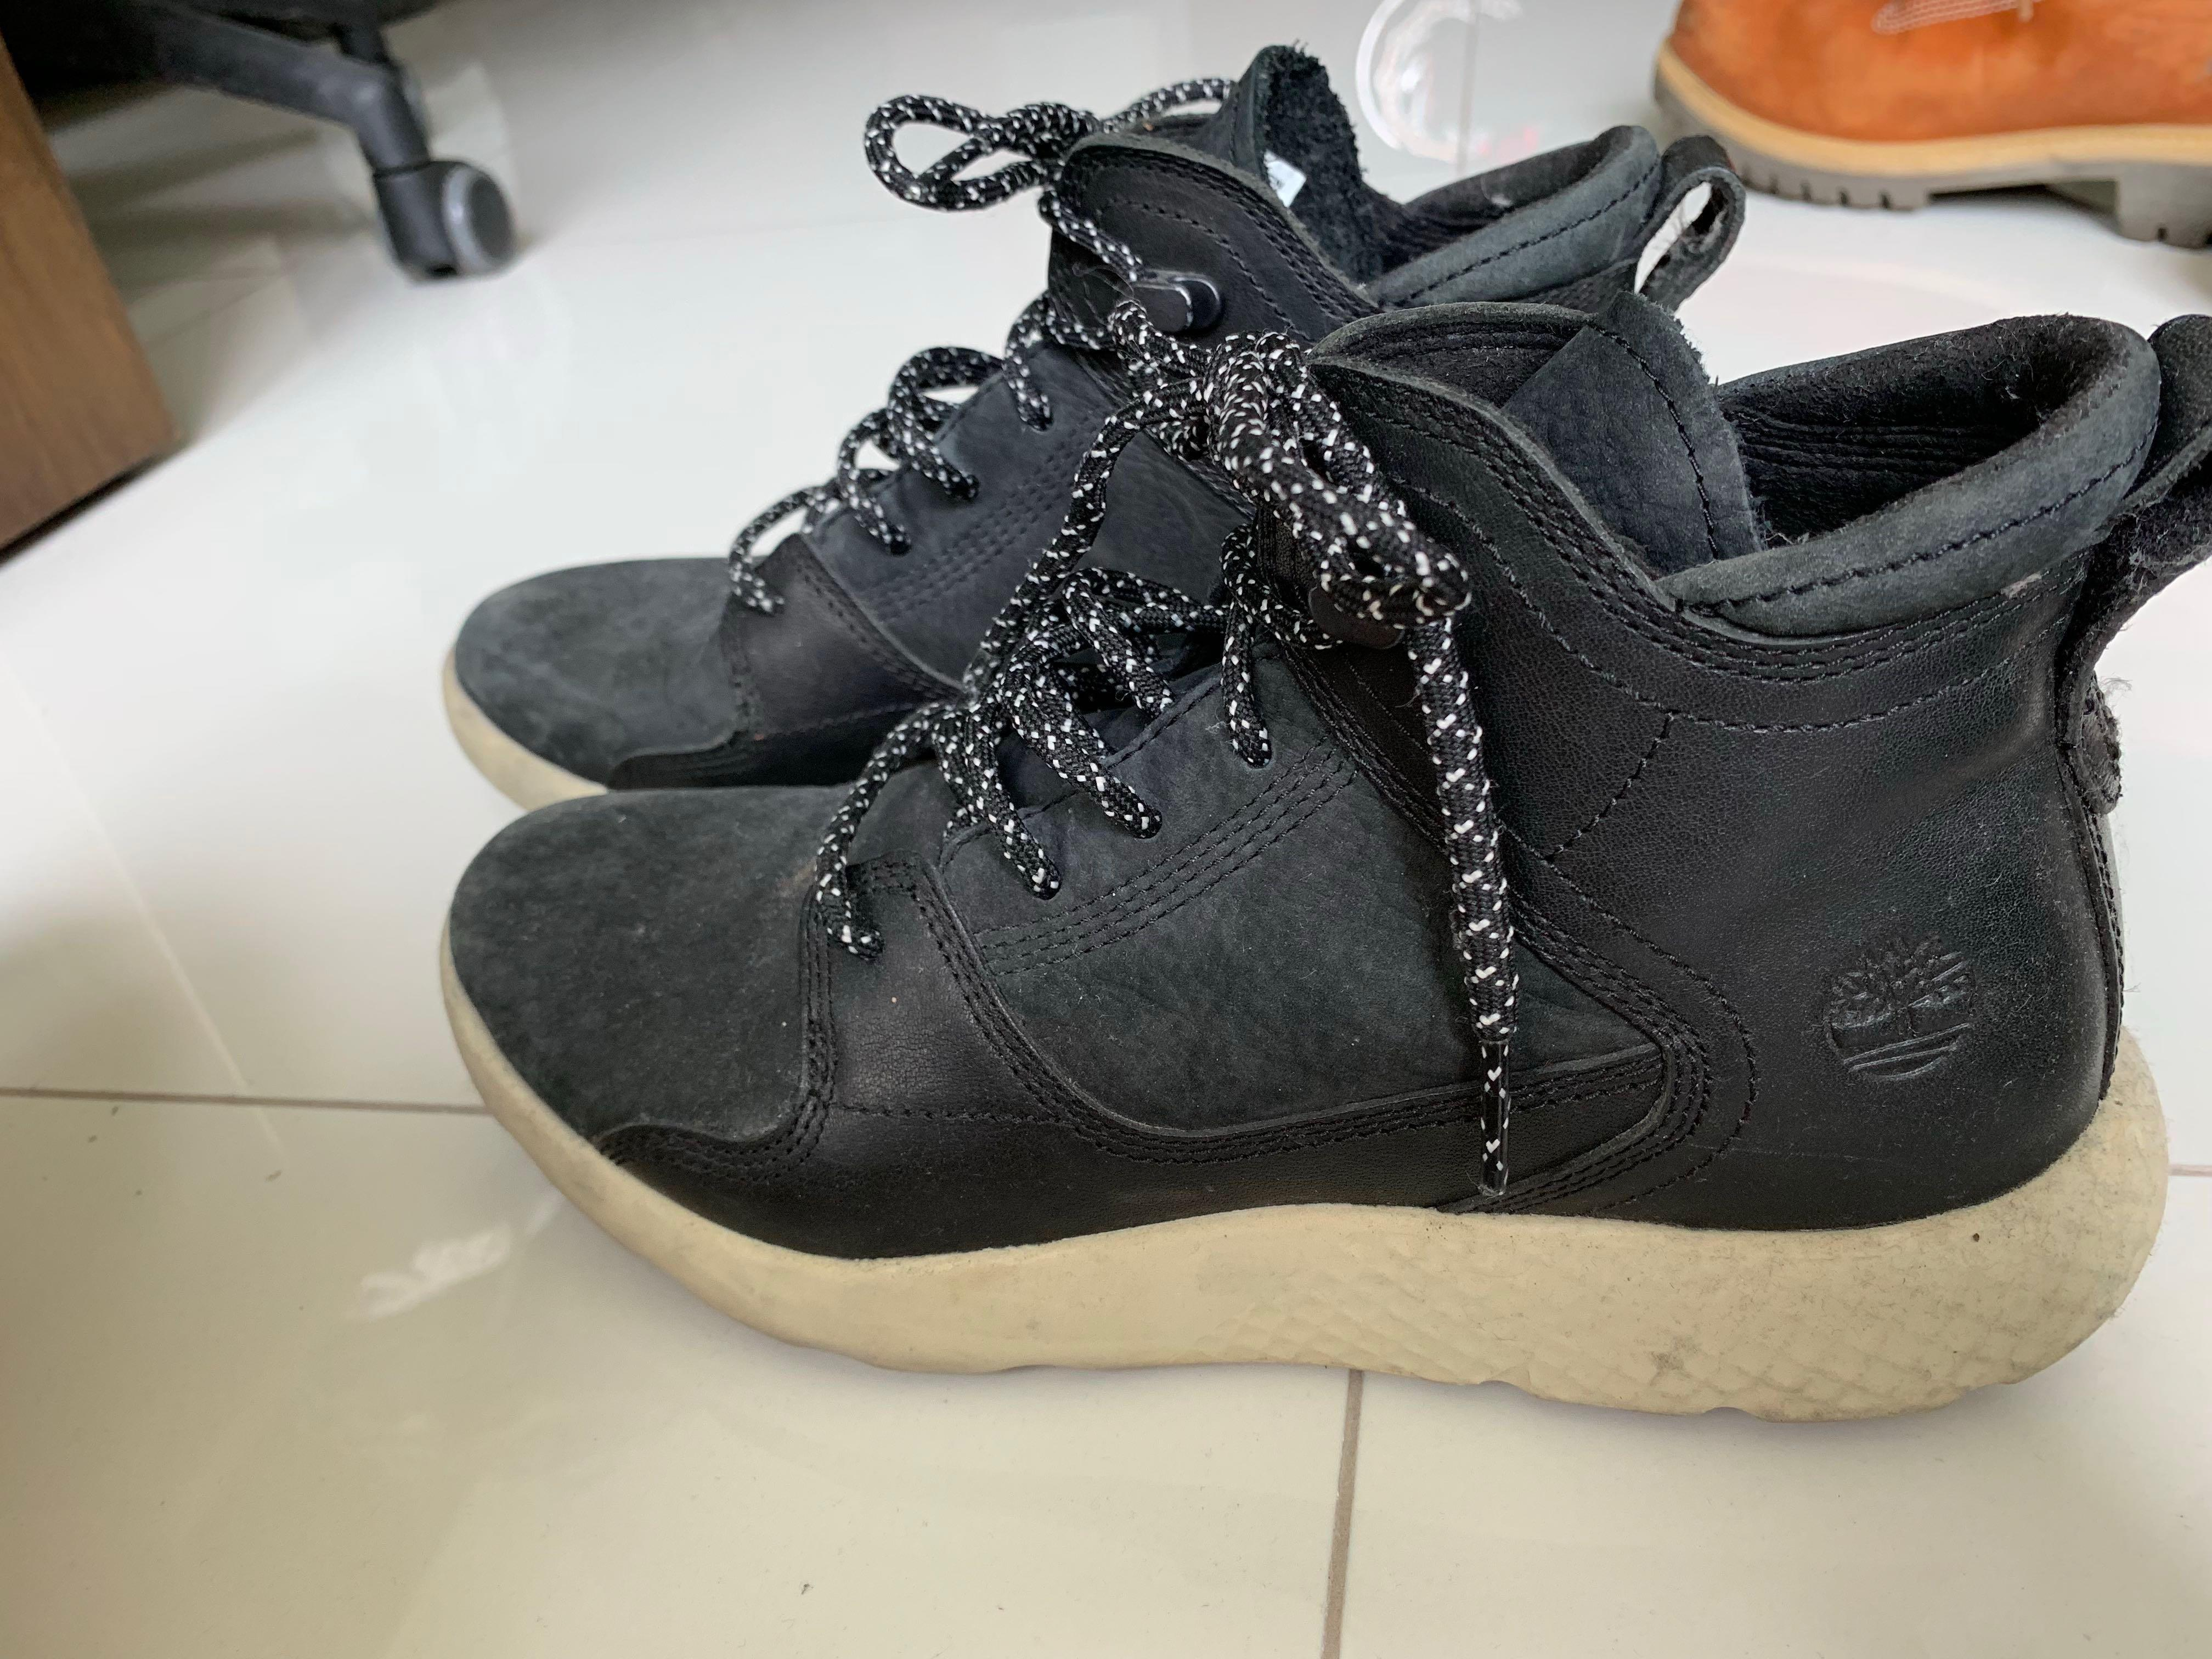 outlet online the sale of shoes biggest discount Timberland boots (women) size EU 38.5, Women's Fashion ...